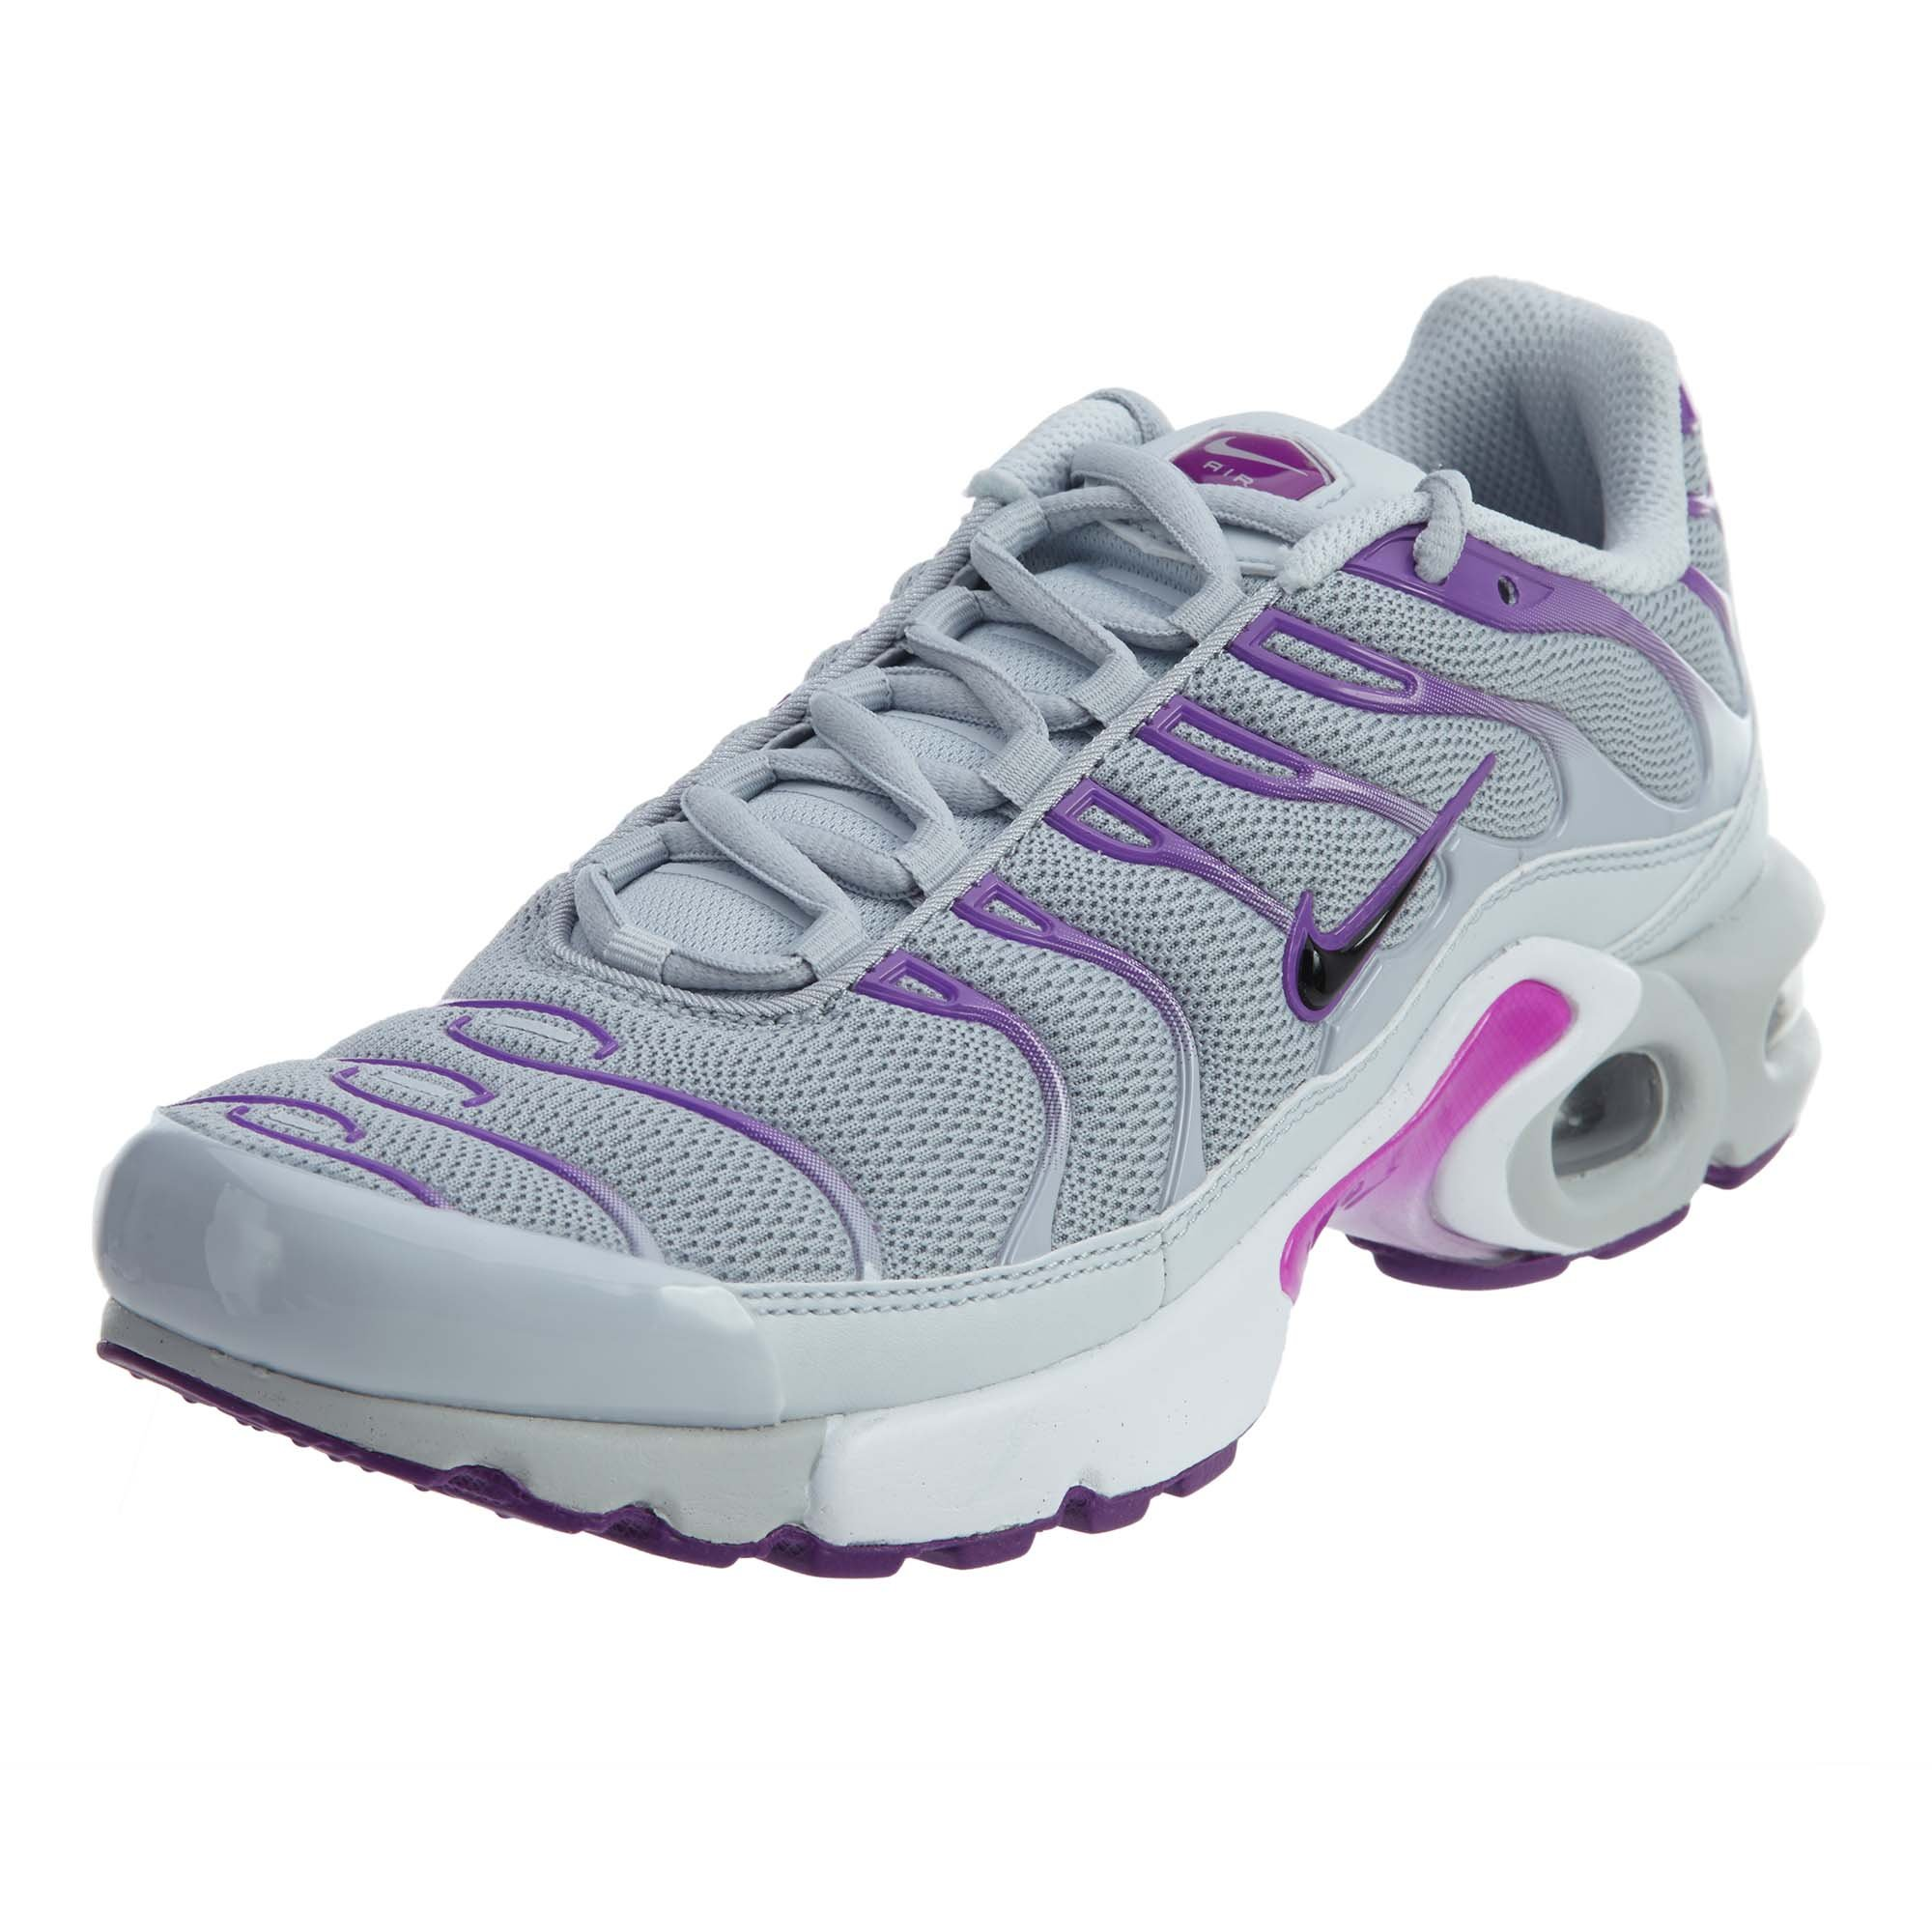 promo code 57def dab16 Galleon - NIKE Air Max Plus TN (GS) Youth Sneaker (5 M US Big Kid)